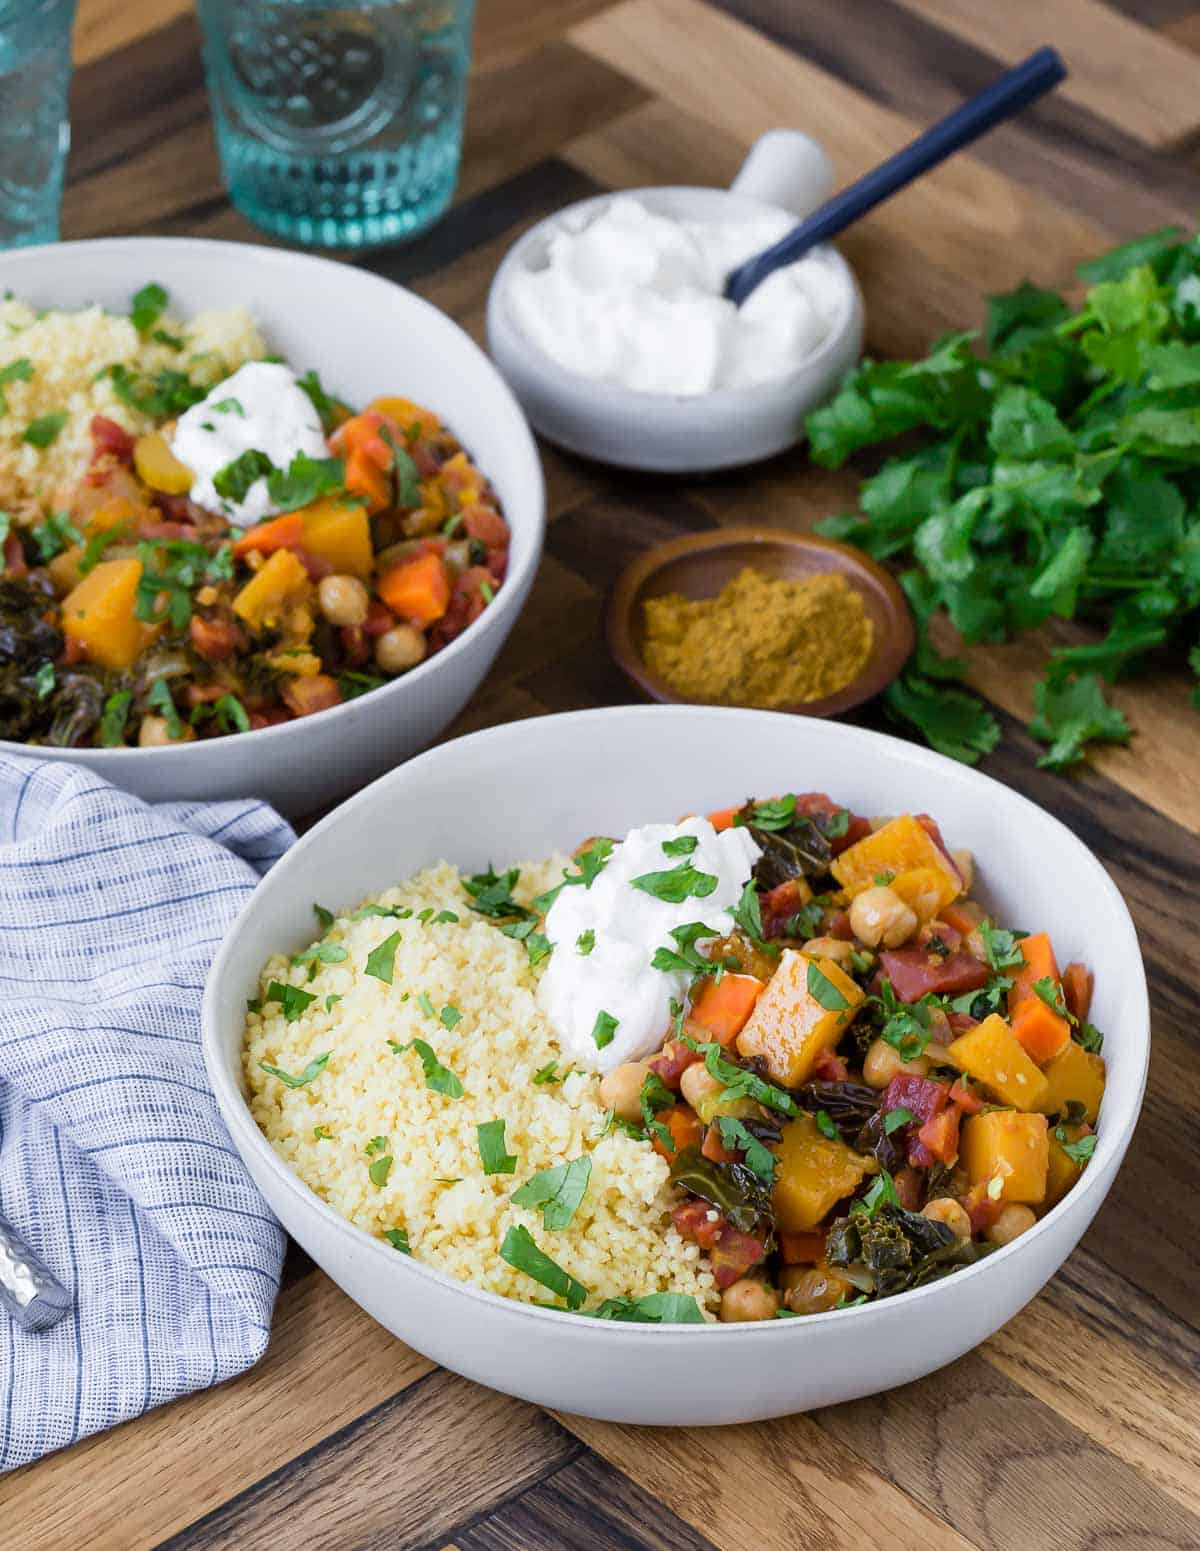 Two bowls of hearty vegetarian stew served over couscous and garnished with greek yogurt.